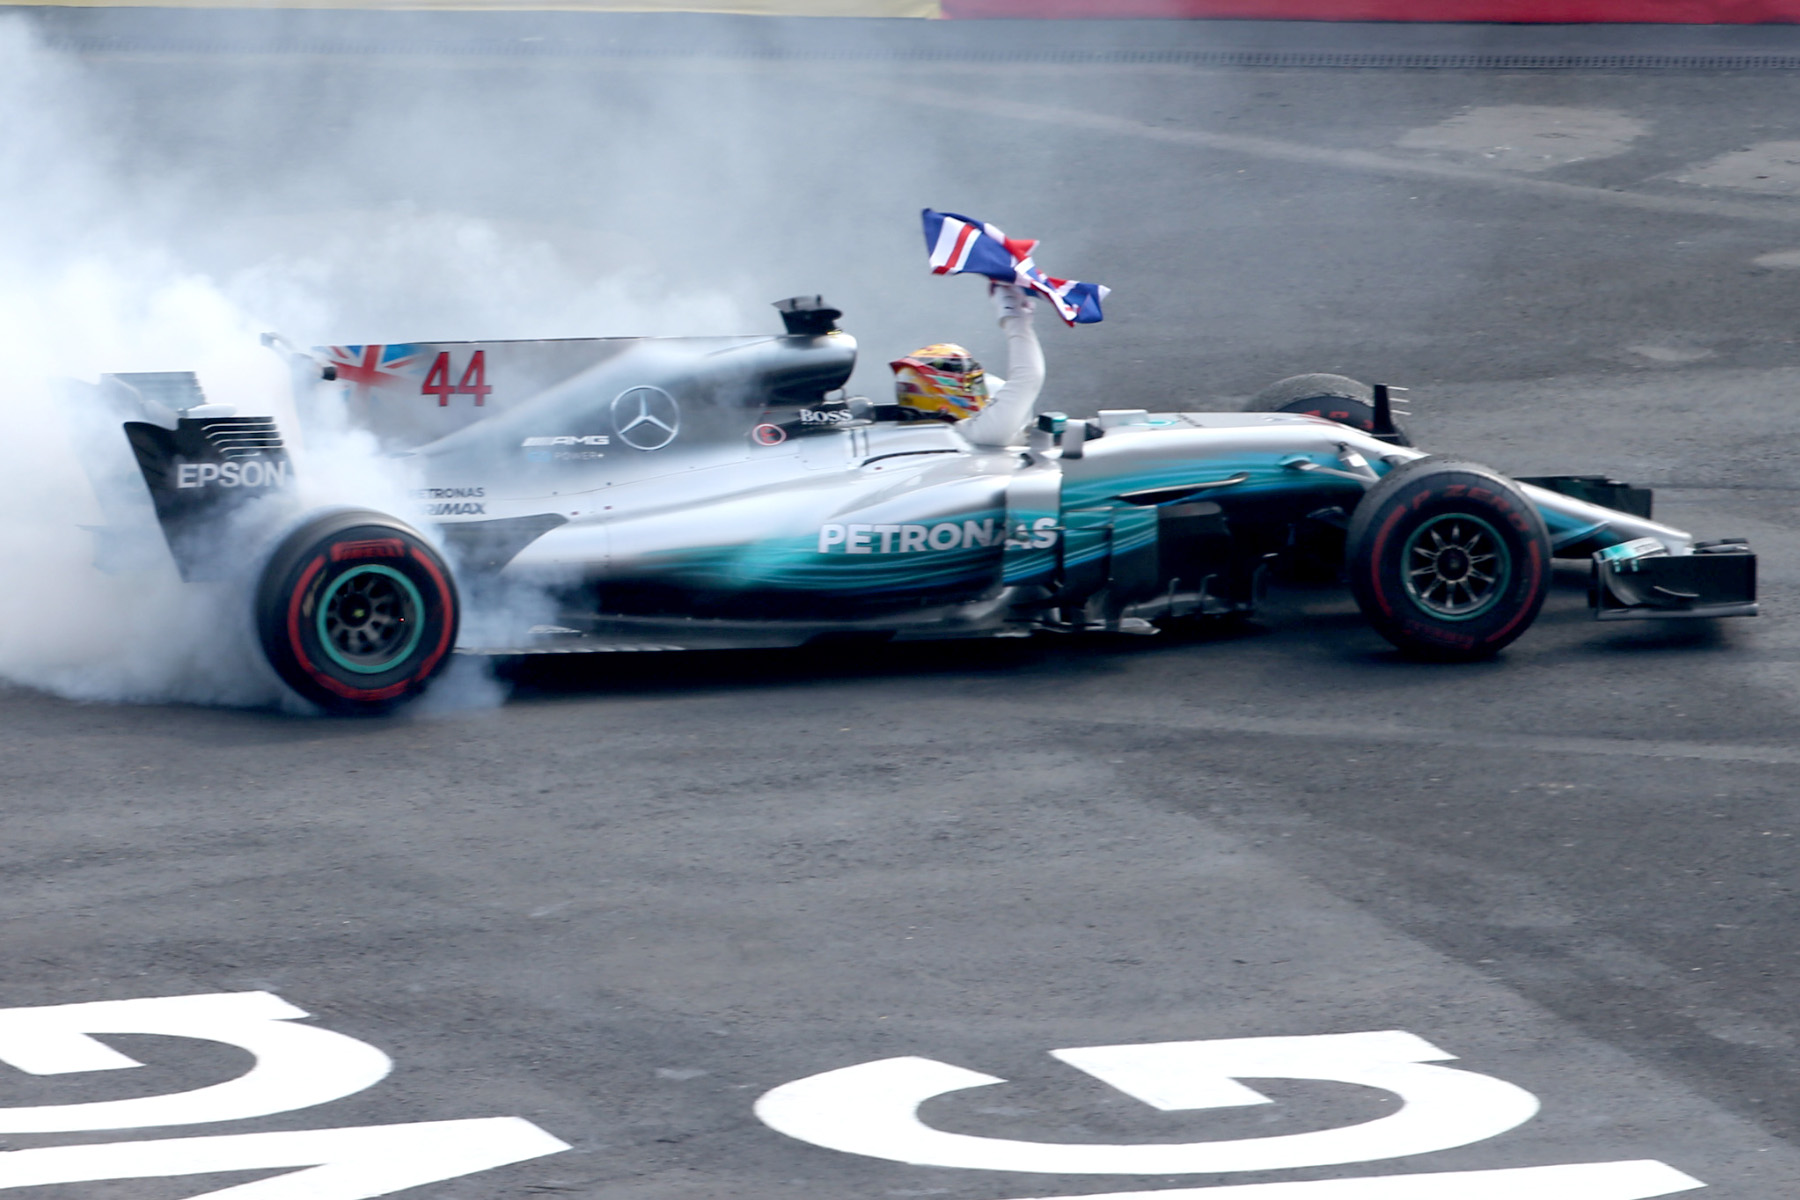 Lewis Hamilton does celebratory doughnuts at the 2017 Mexican Grand Prix.